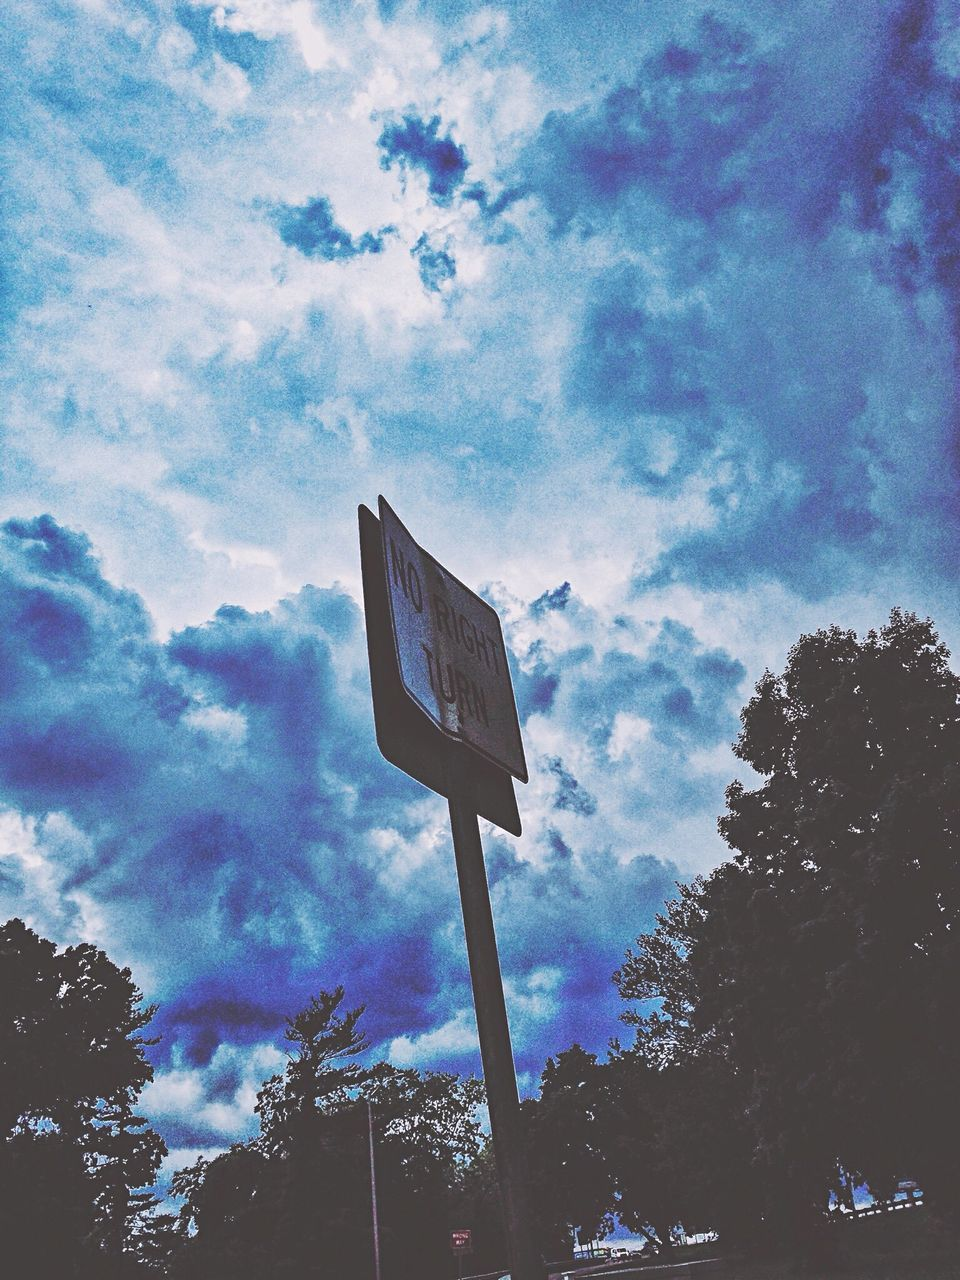 tree, sky, low angle view, cloud - sky, no people, day, outdoors, road sign, nature